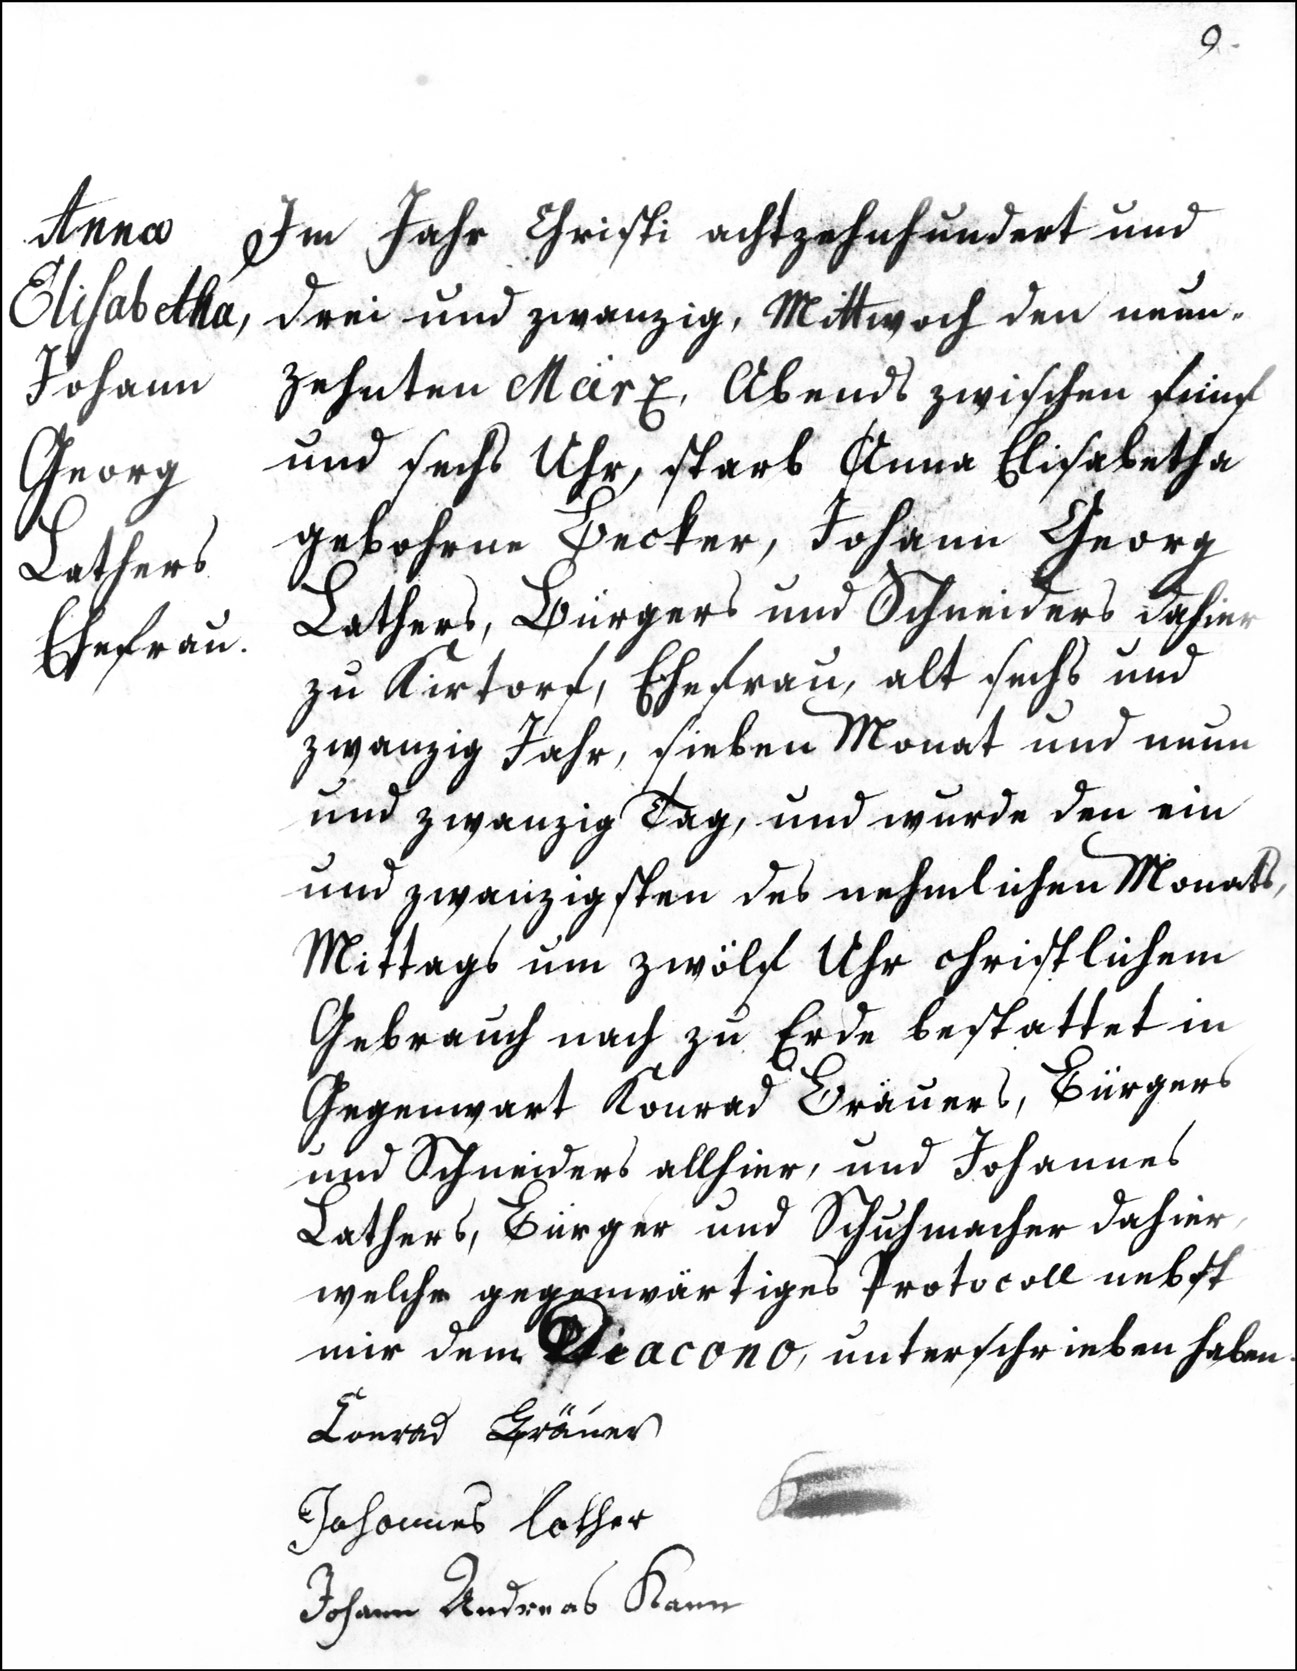 The Death and Burial Record of Anna Elisabetha Lather (nee Becker) - 1823